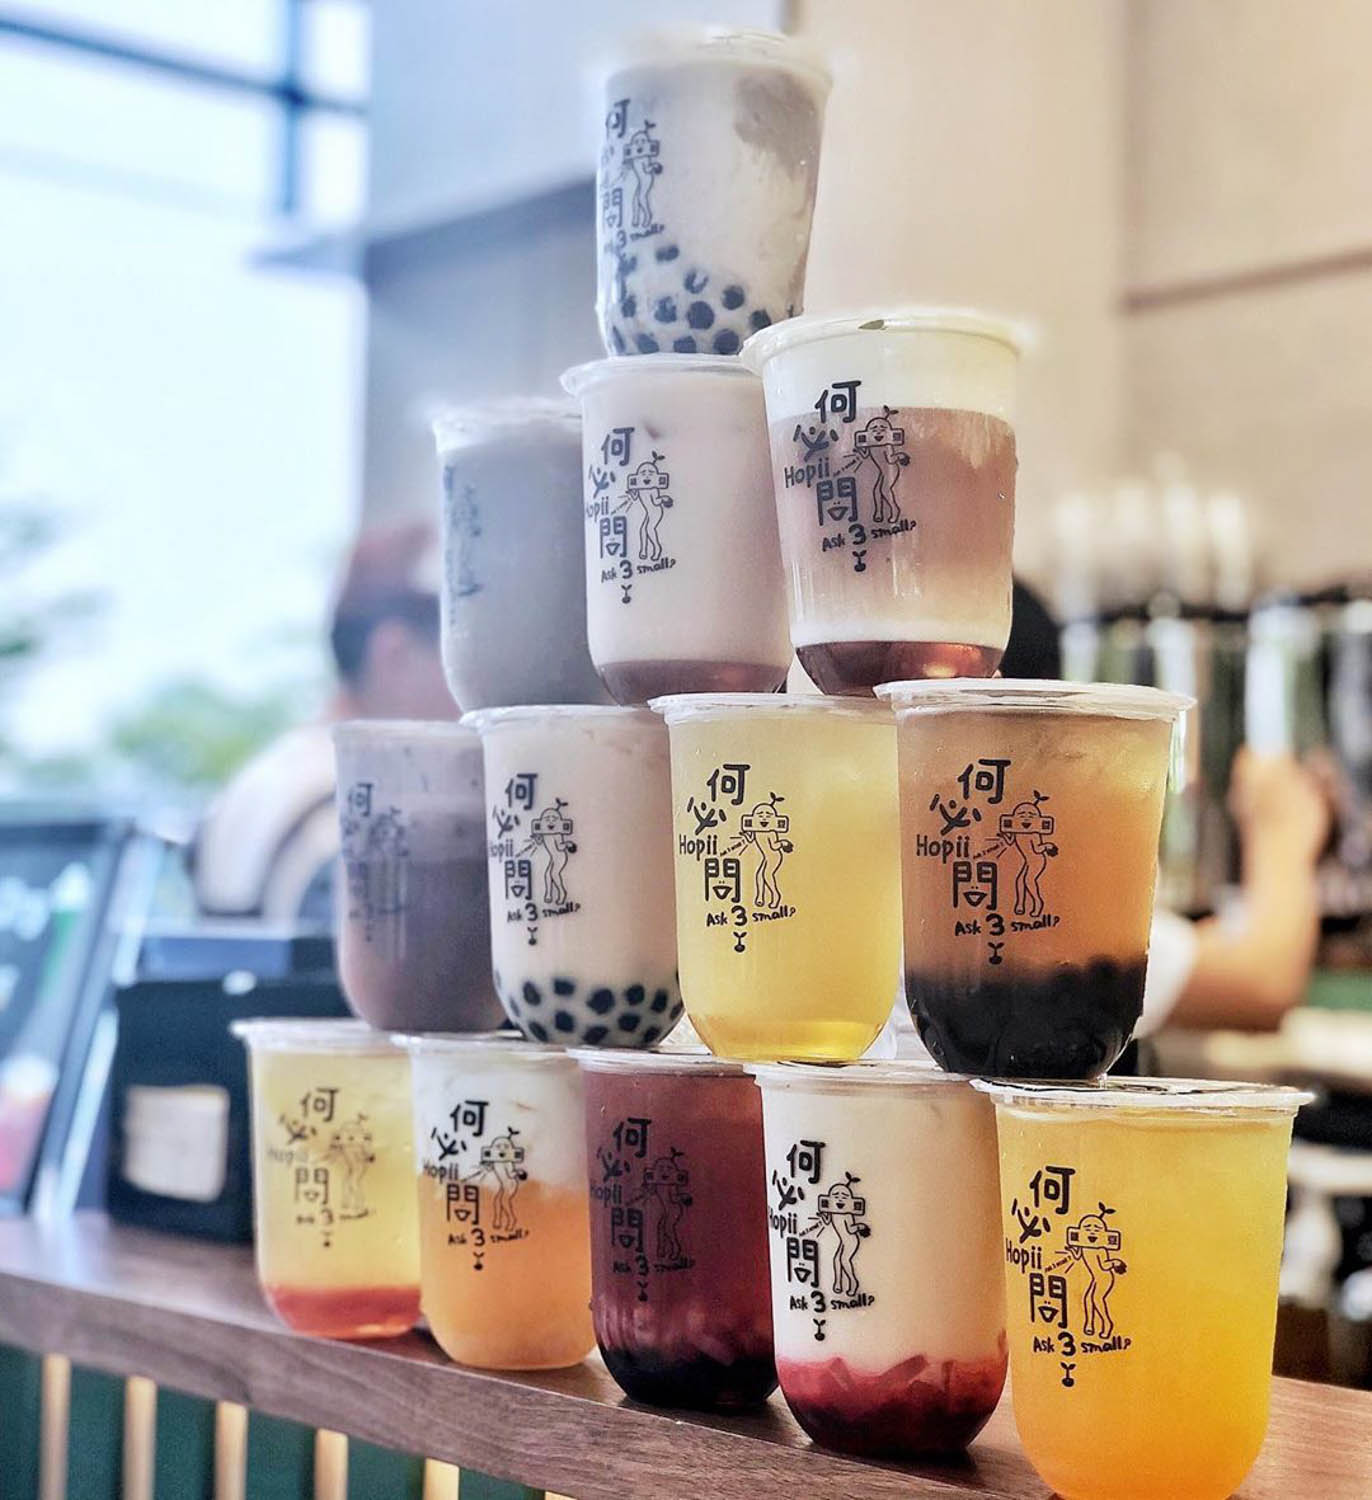 Bubble Tea Shops - Hopii SG